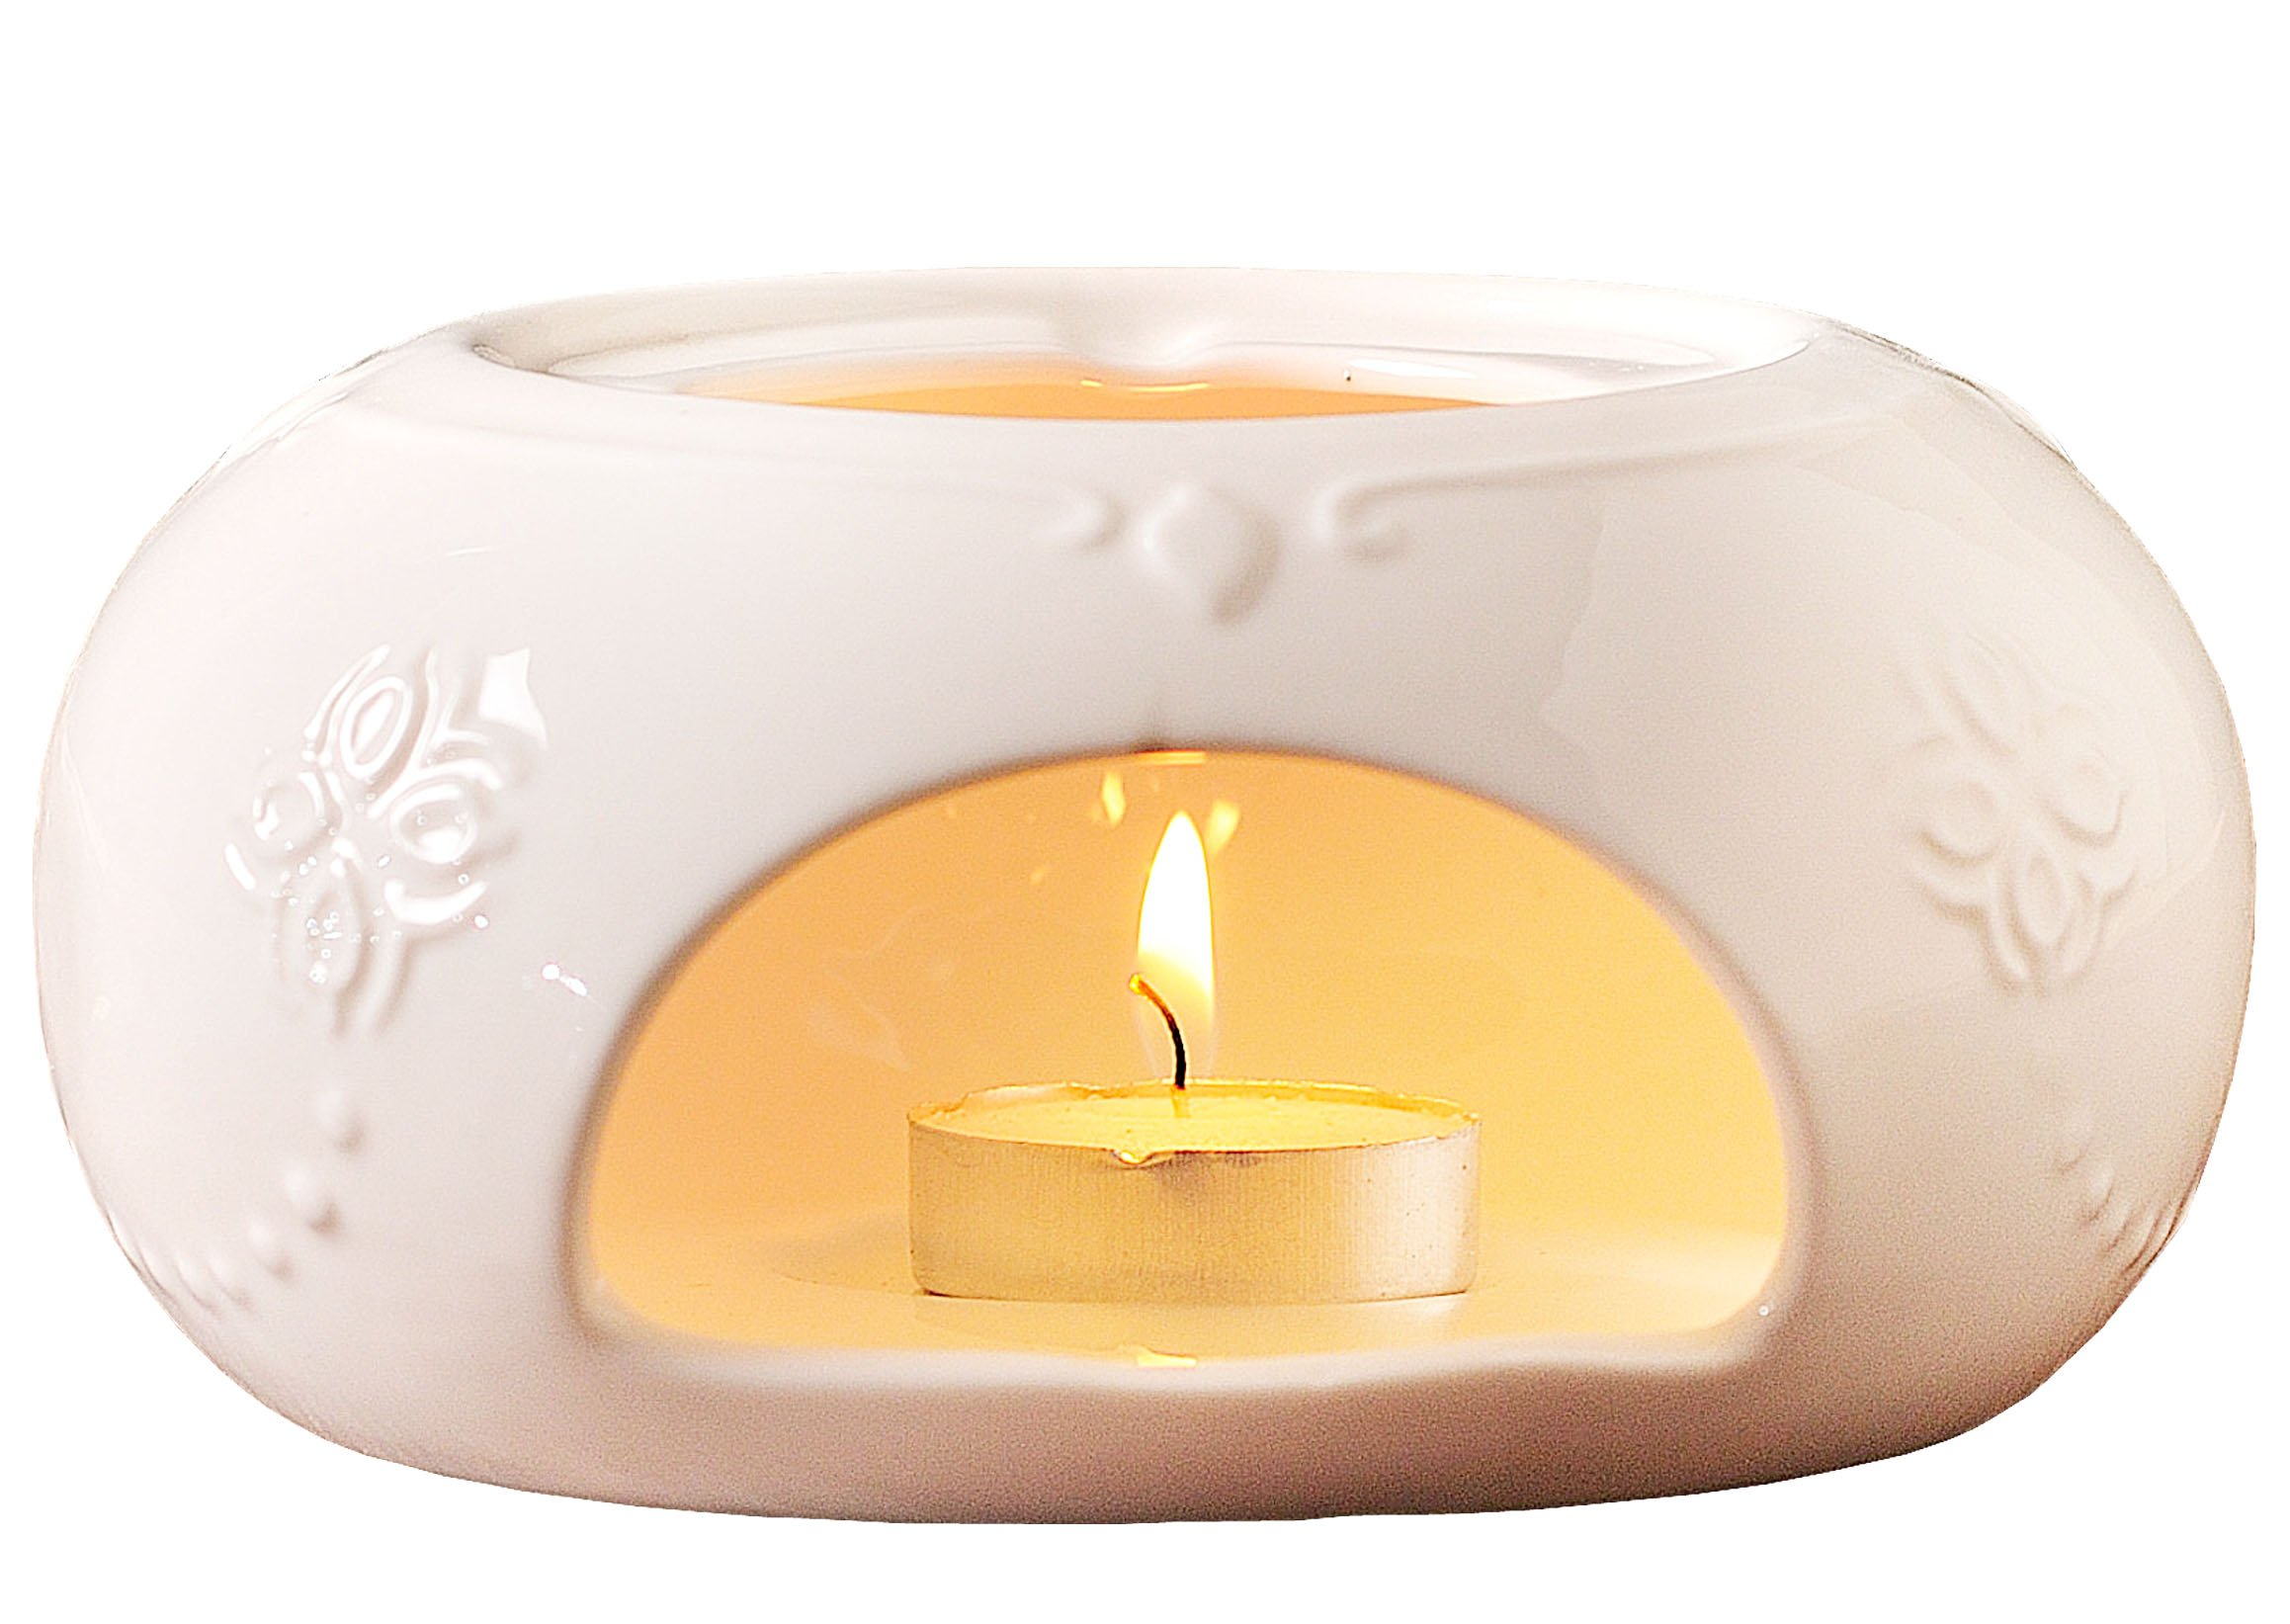 Jusalpha Elegant Embossed White Ceramic Teapot Warmer 01